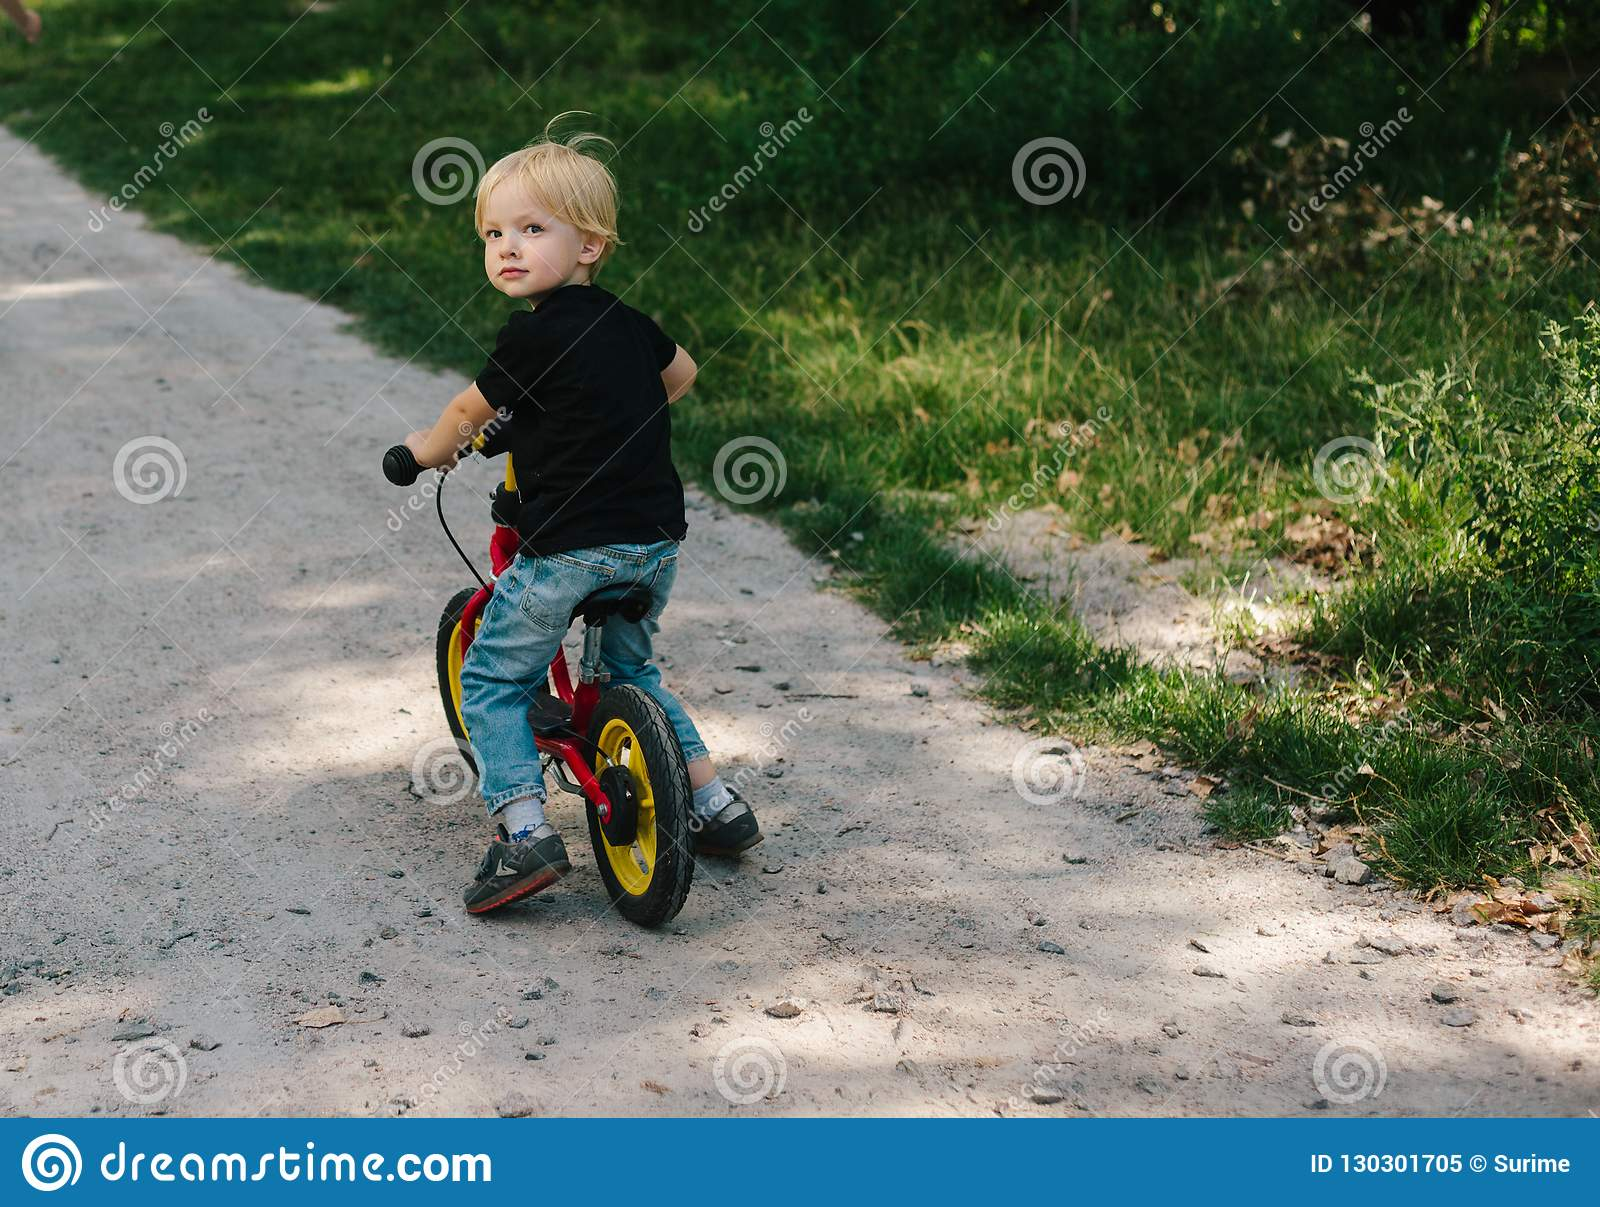 Caucasian Kid On Bicycle Stock Image Image Of Nature 130301705